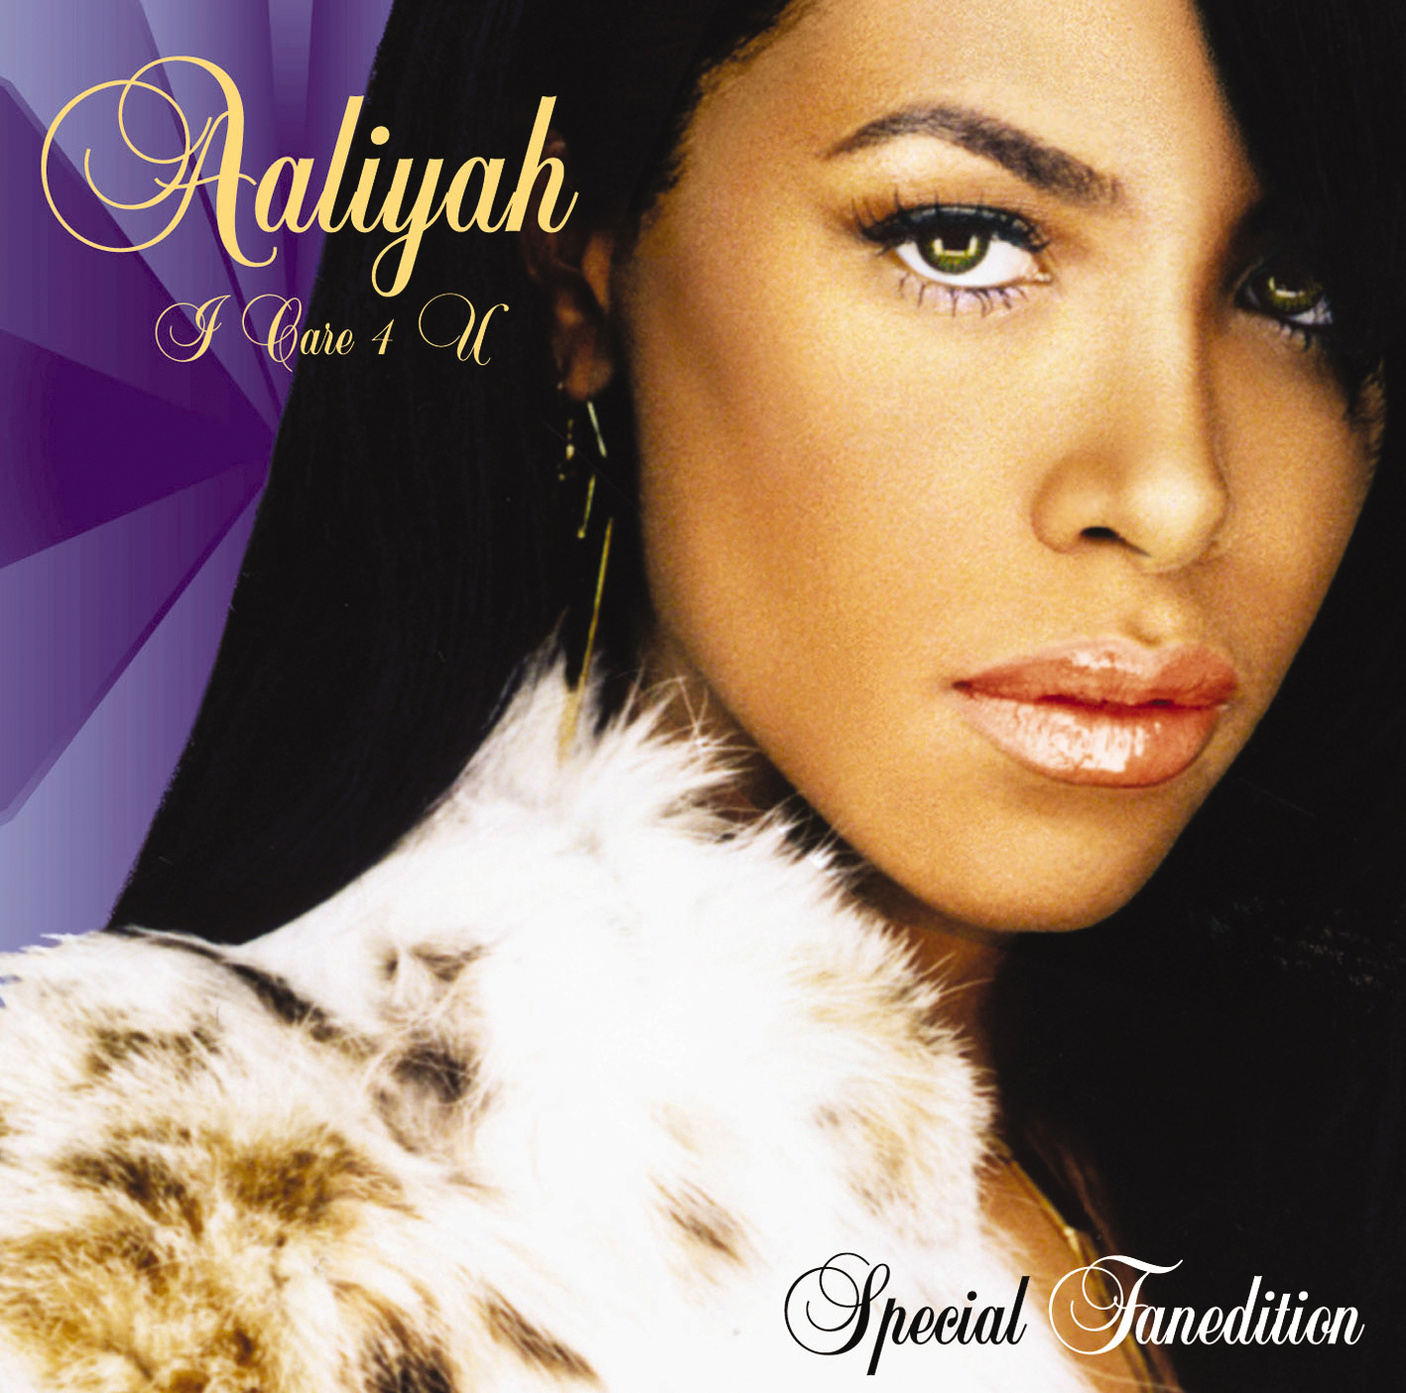 Aaliyah - I Care 4 U-Special Fan Edition)